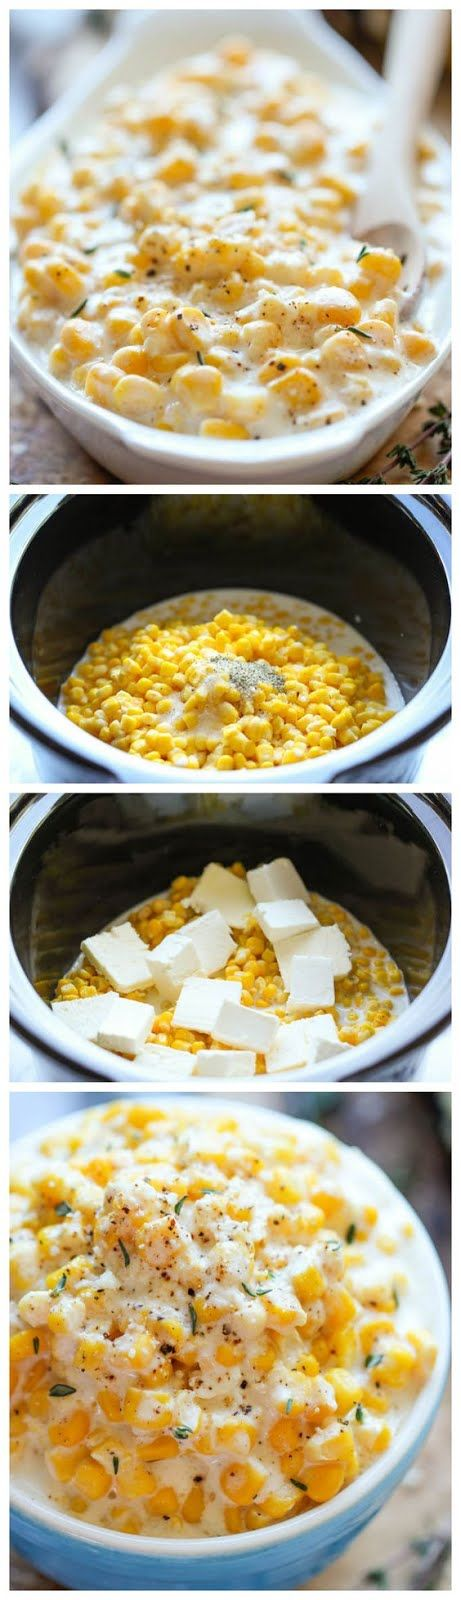 Super easy side that takes 10 minutes to prep! Slow cooker creamed corn